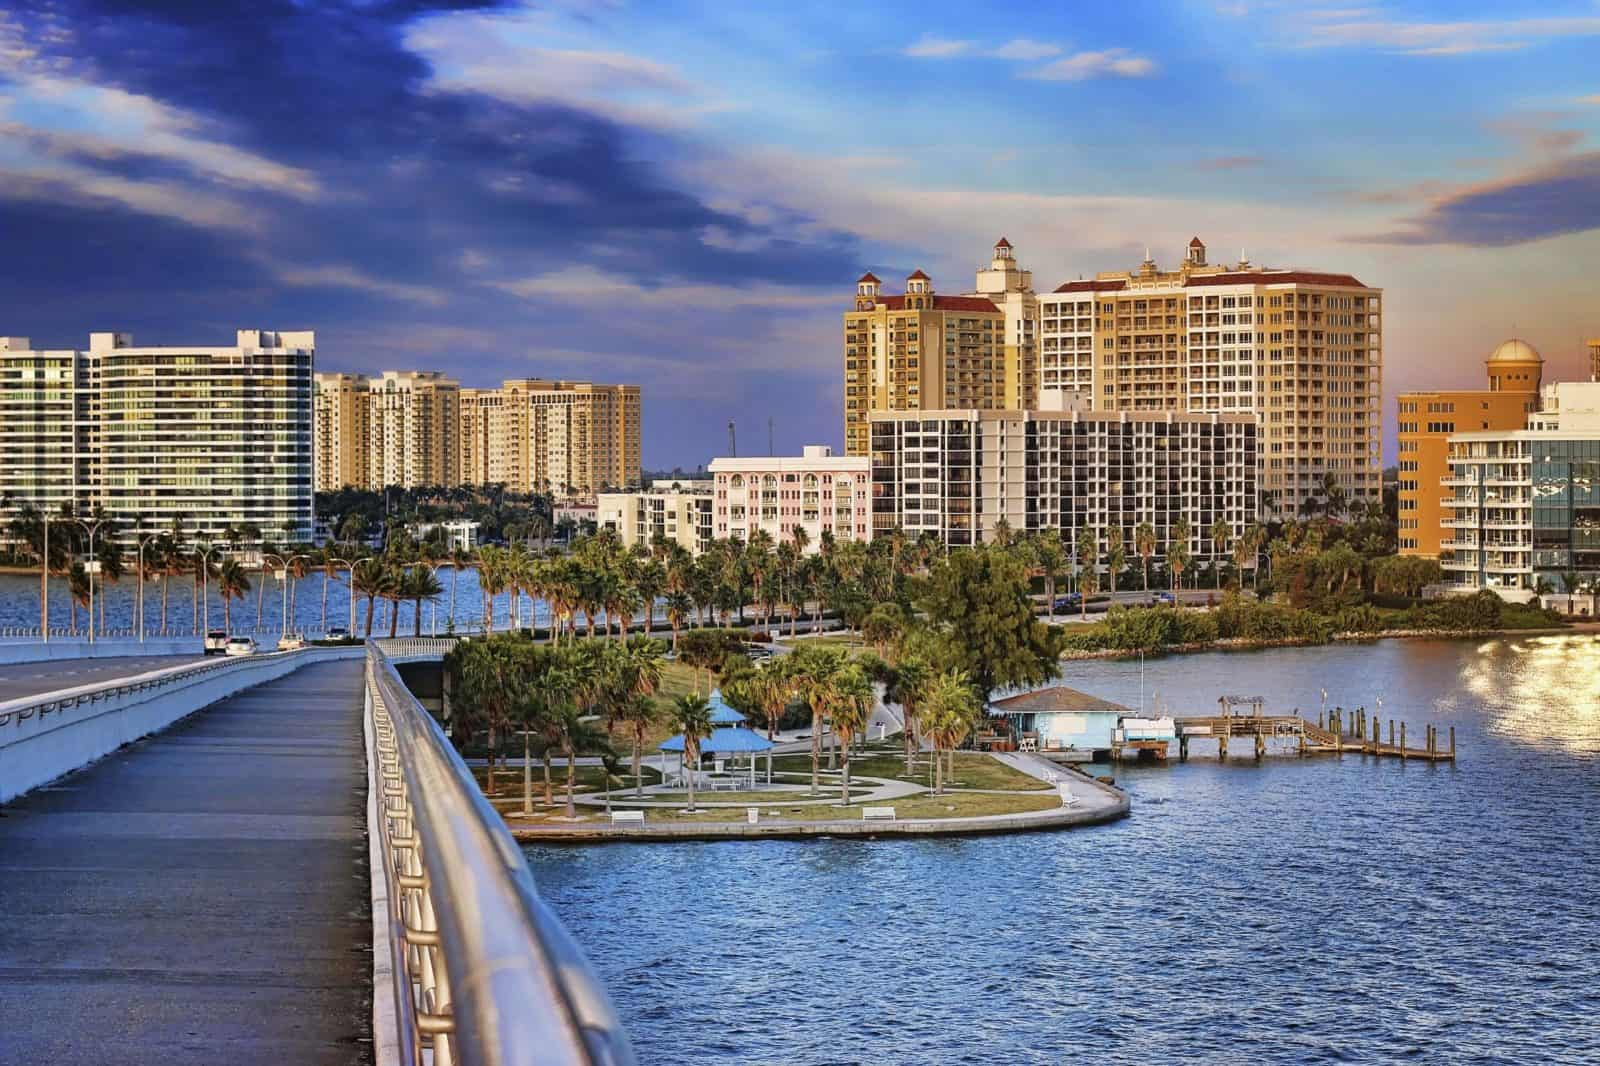 Green & Co. are the best Business Brokers in Florida. Specializing in the areas of Southwest, Central & West Central Florida, Serving Naples, Fort Myers, Sarasota, Bradenton, Tampa Bay, St.Petersburg, Orlando - Florida Business Broker - Businesses For Sale